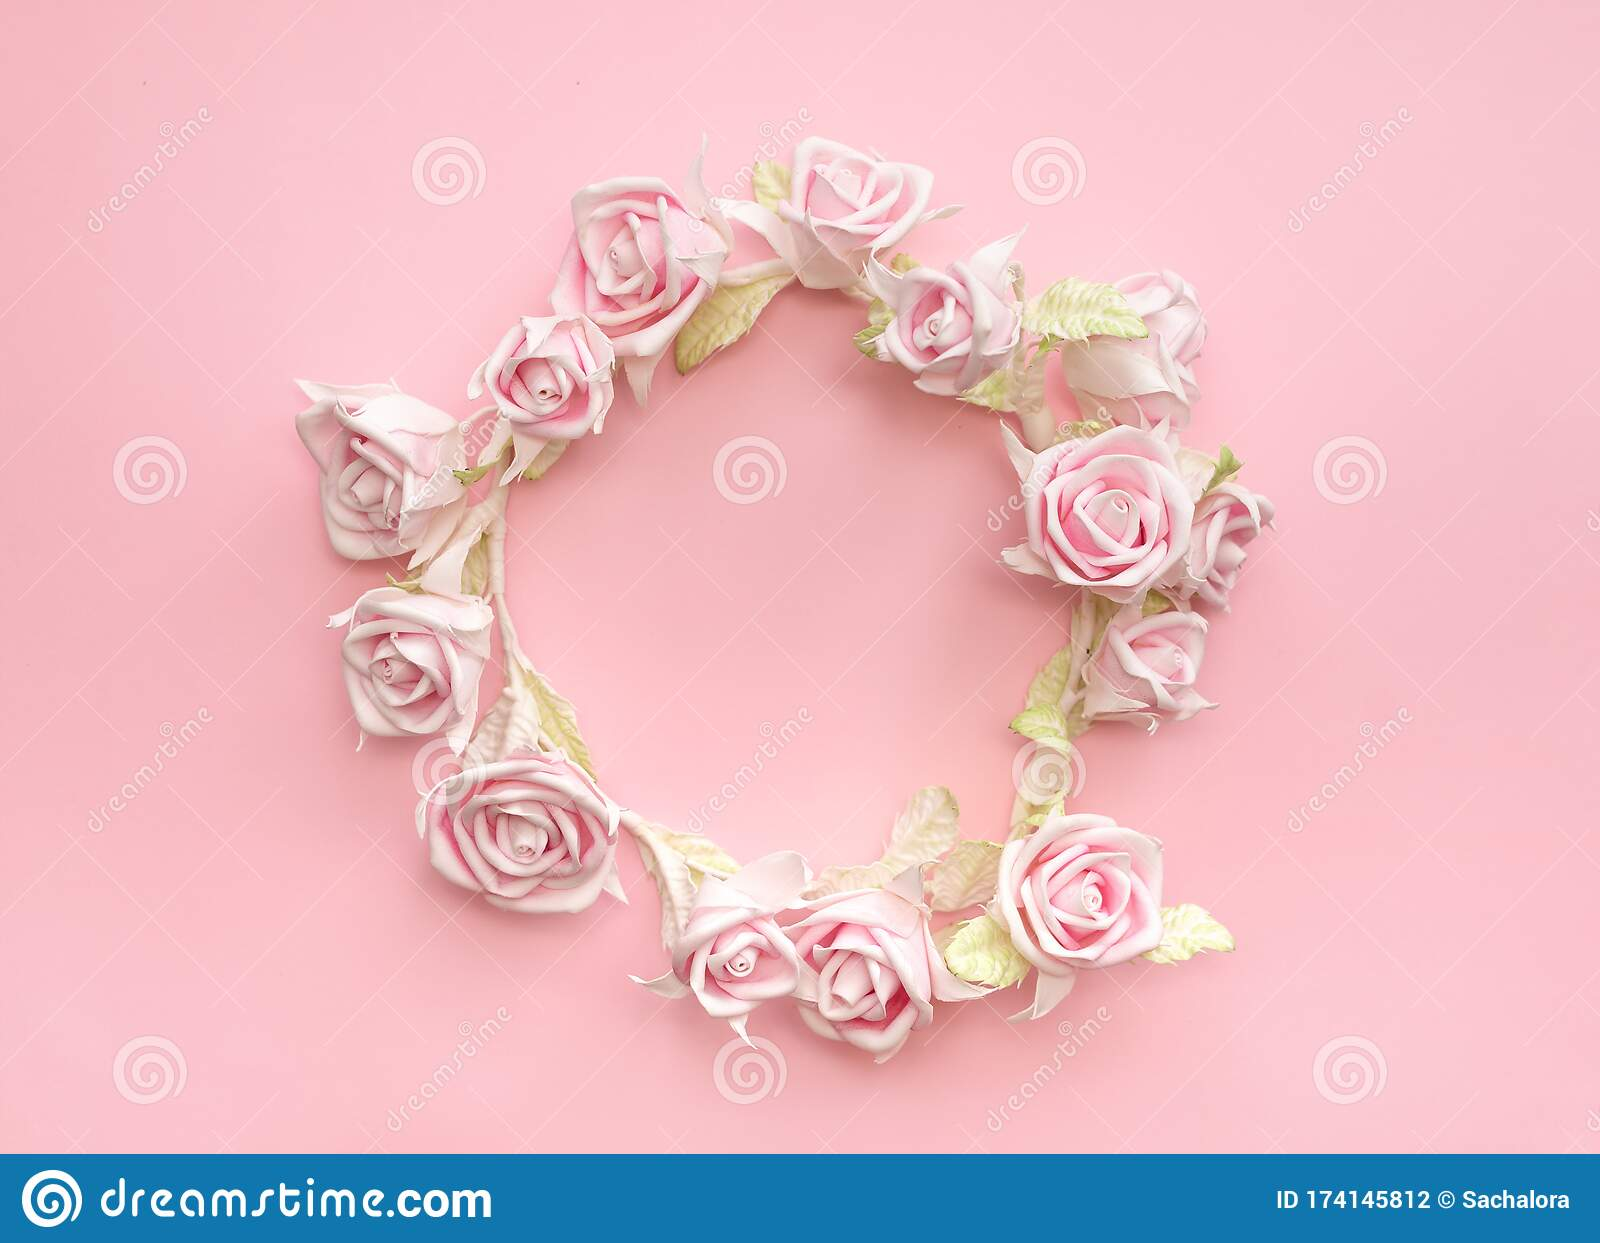 Pink Roses Wreath For A Girl And A Woman On Her Head On Pink For Beauty Stock Photo Image Of Branch Blossom 174145812